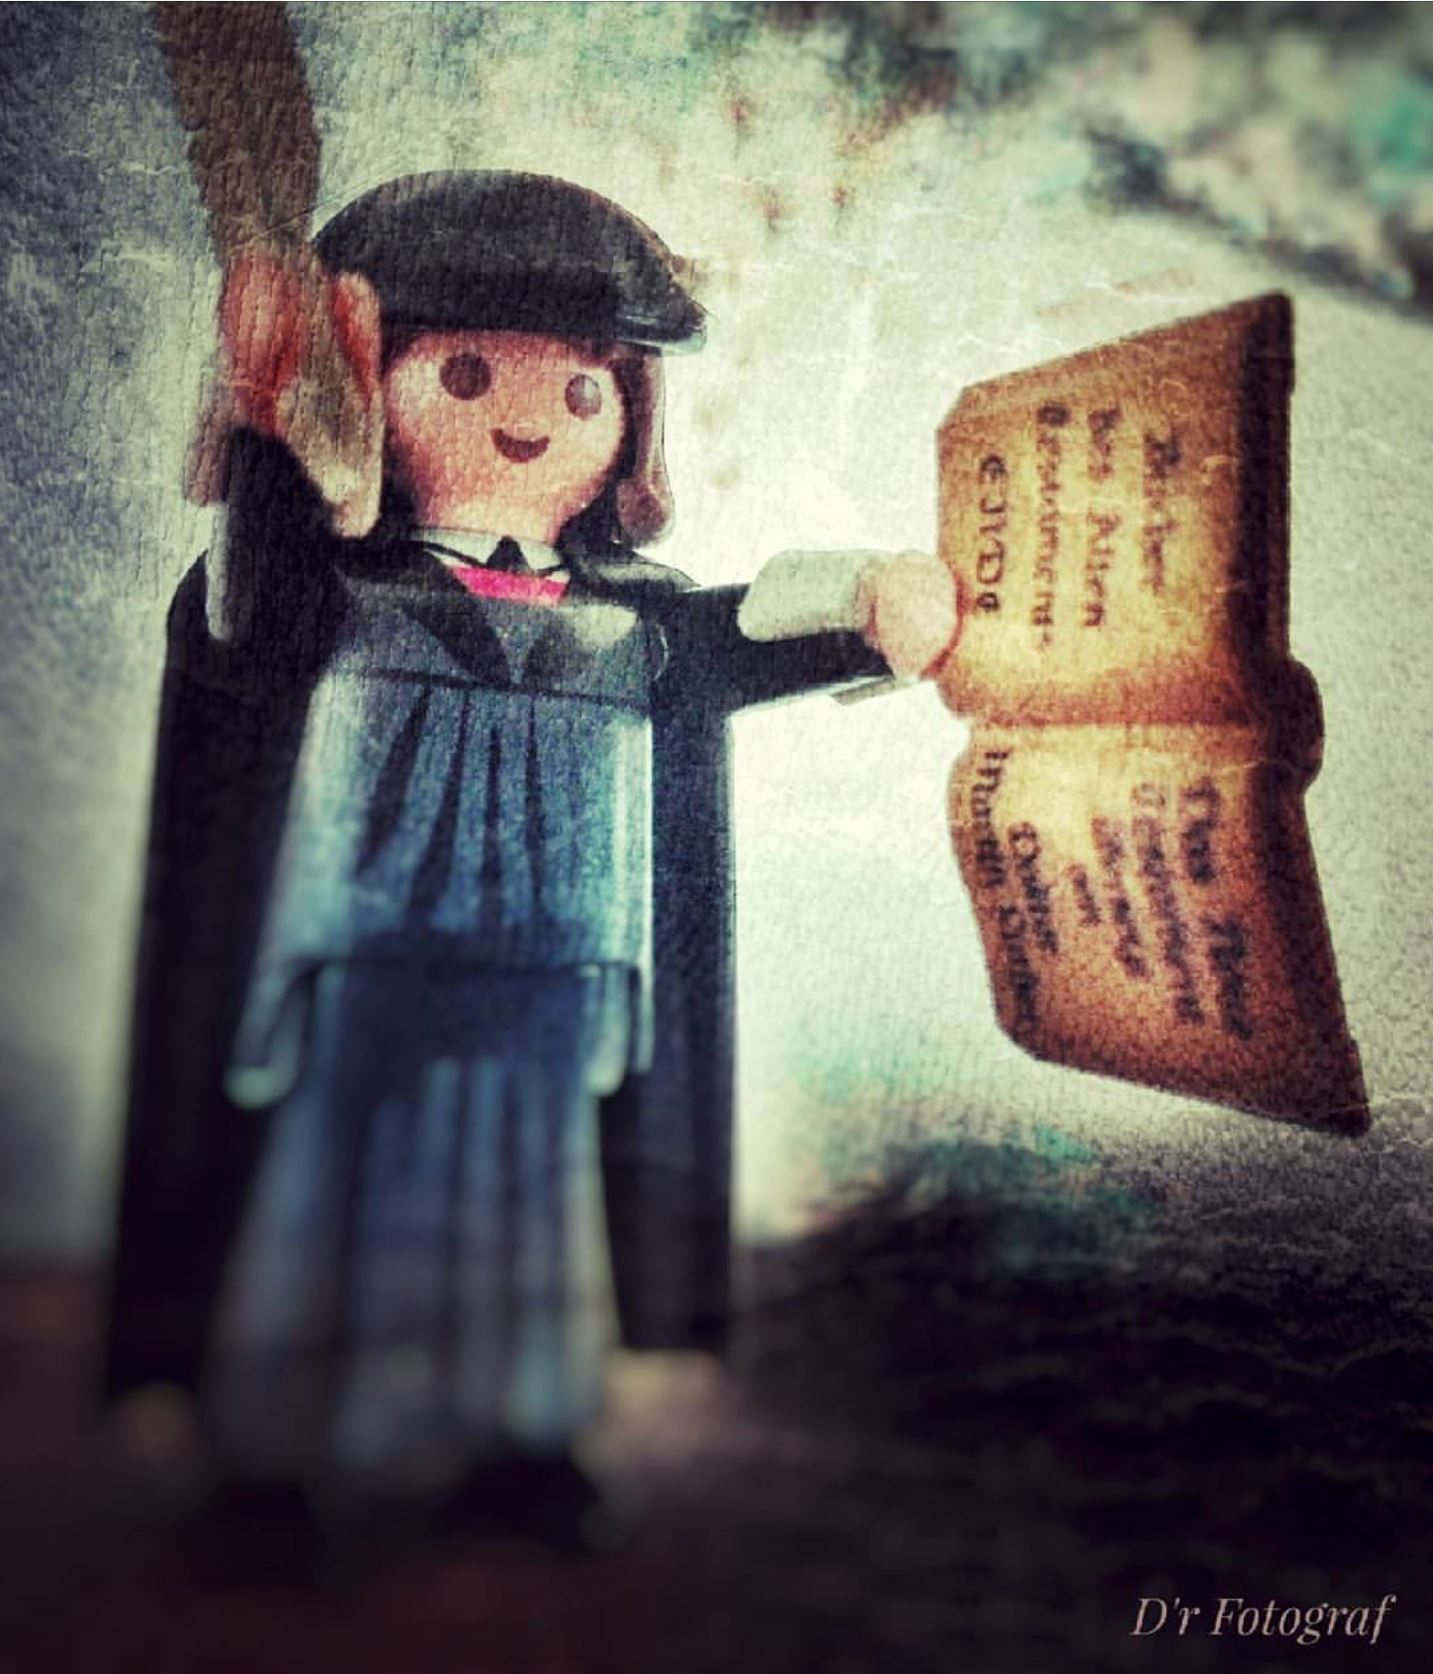 Luther (Playmobil)